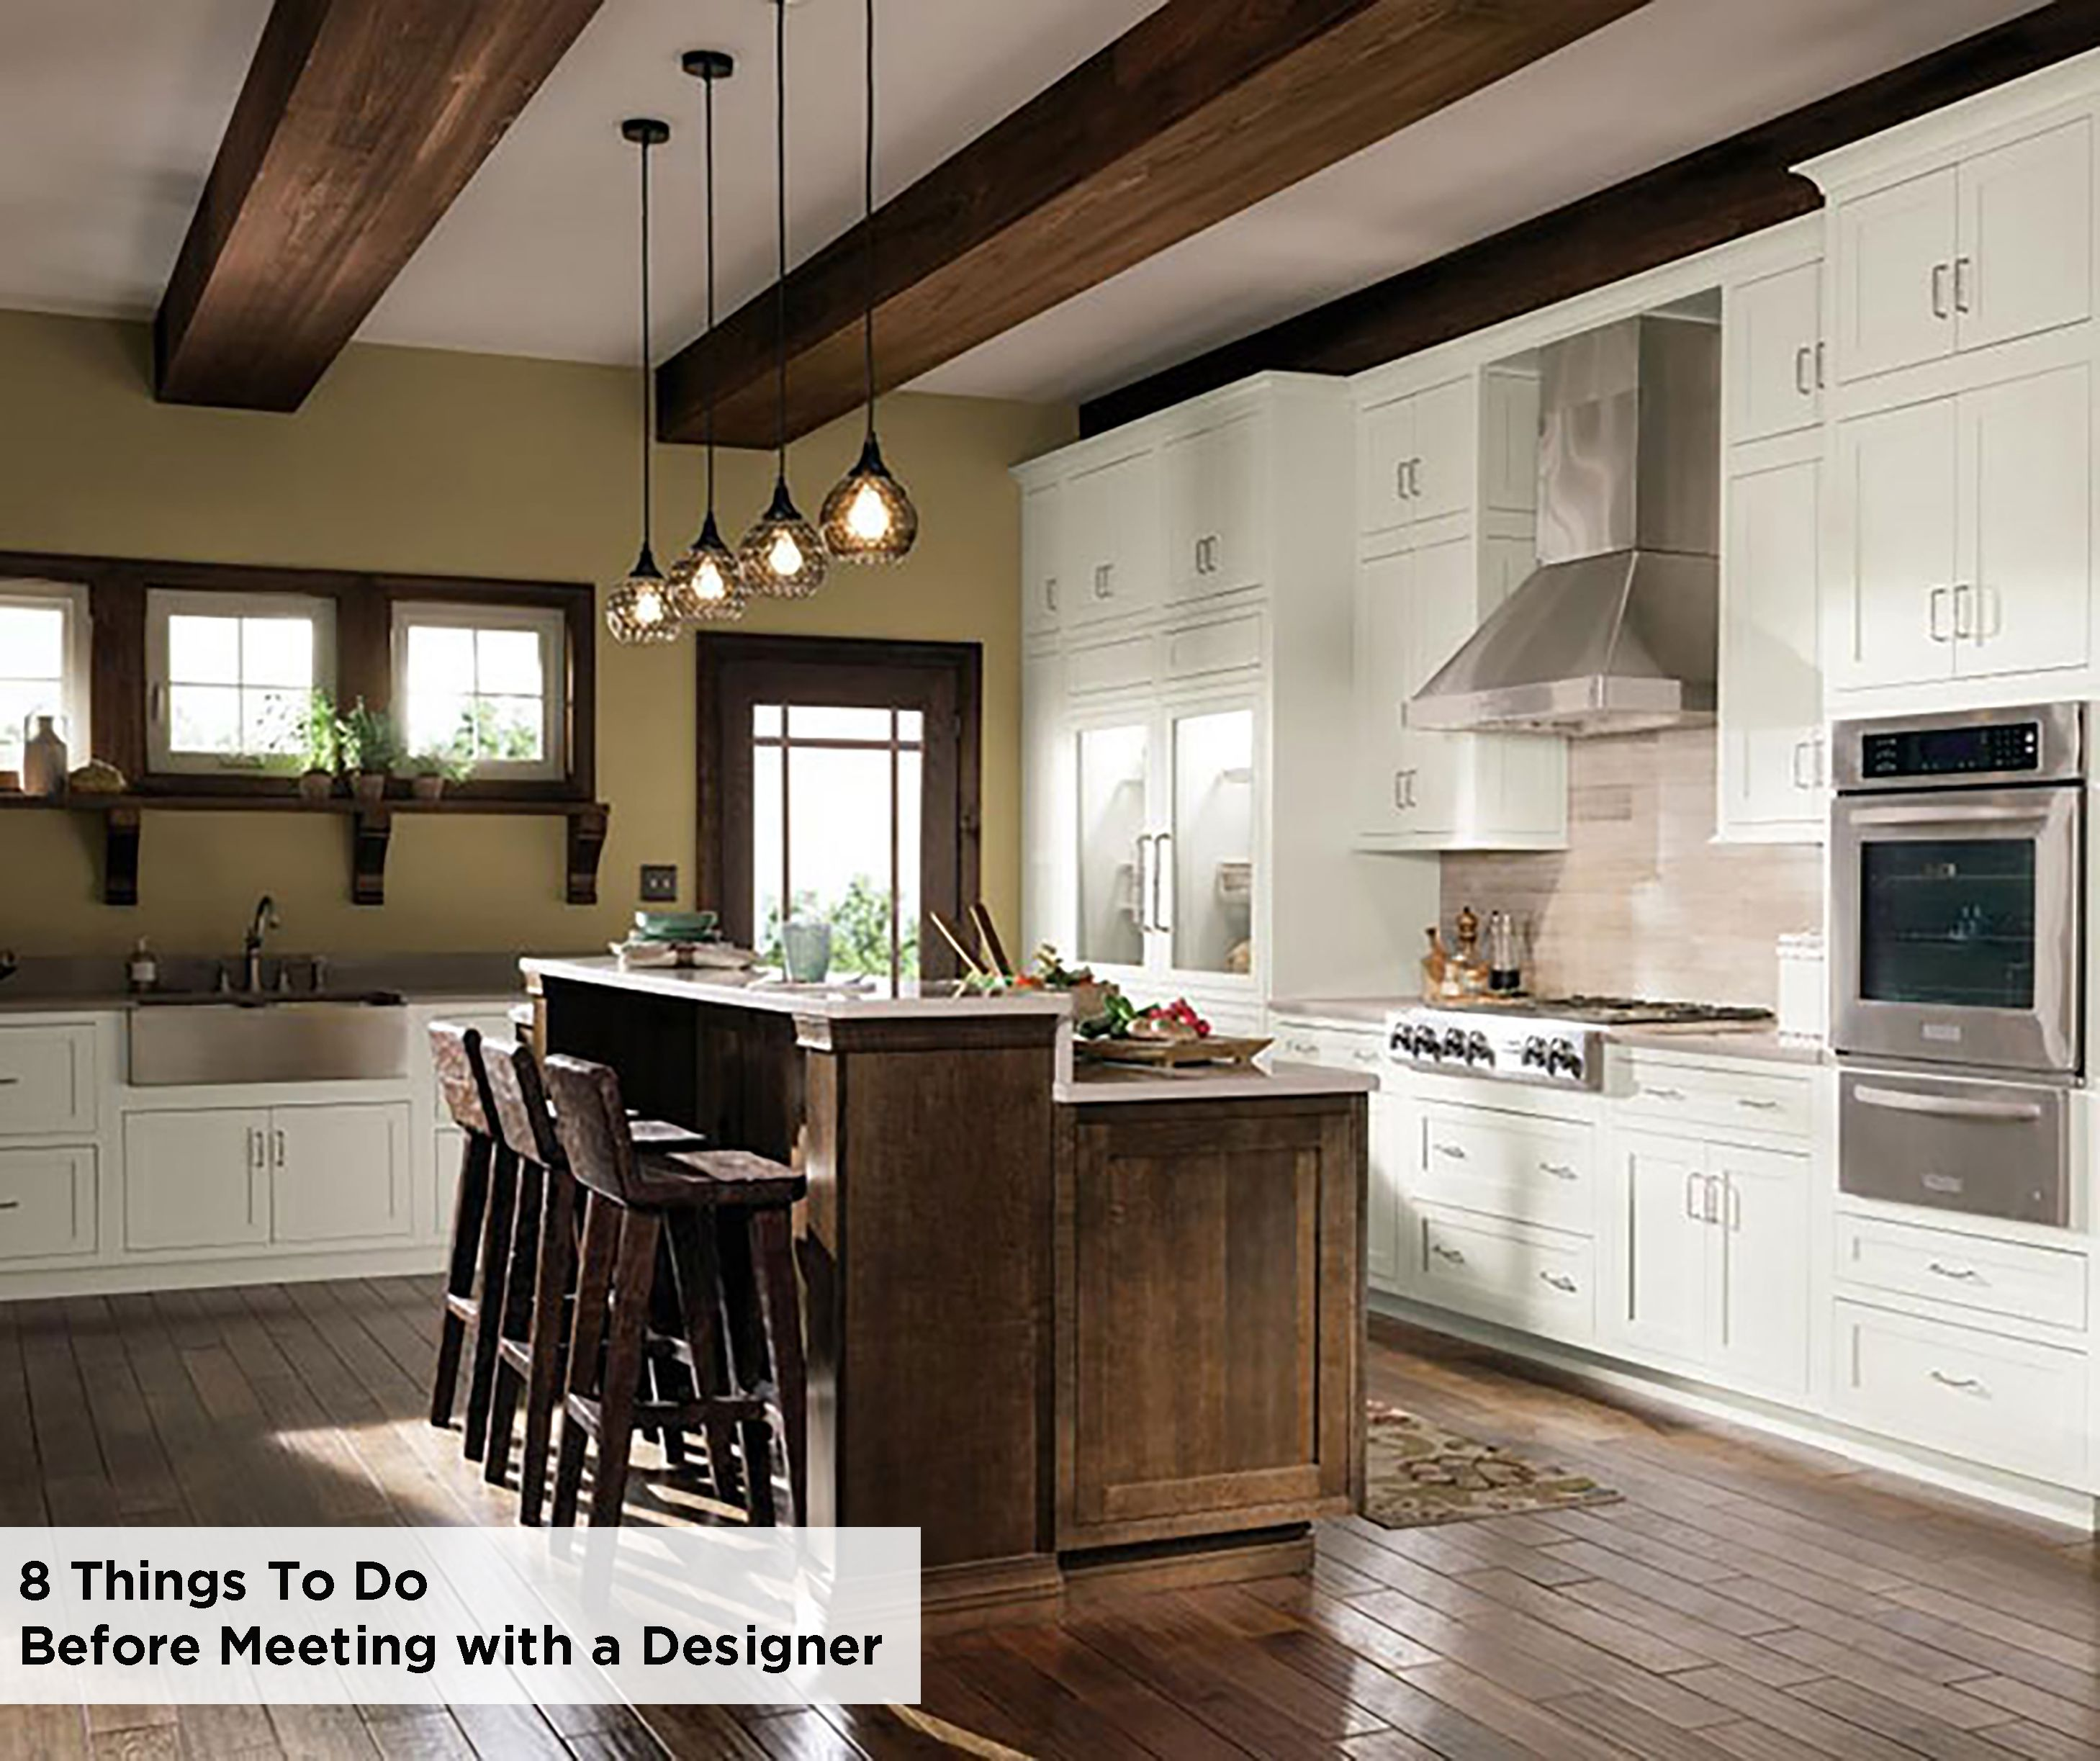 Here Are 8 Things To Do Before Meeting With A Decora Cabinets Designer Be Proactive About Your Process T Rustic Kitchen Kitchen Cabinet Styles Decora Cabinets